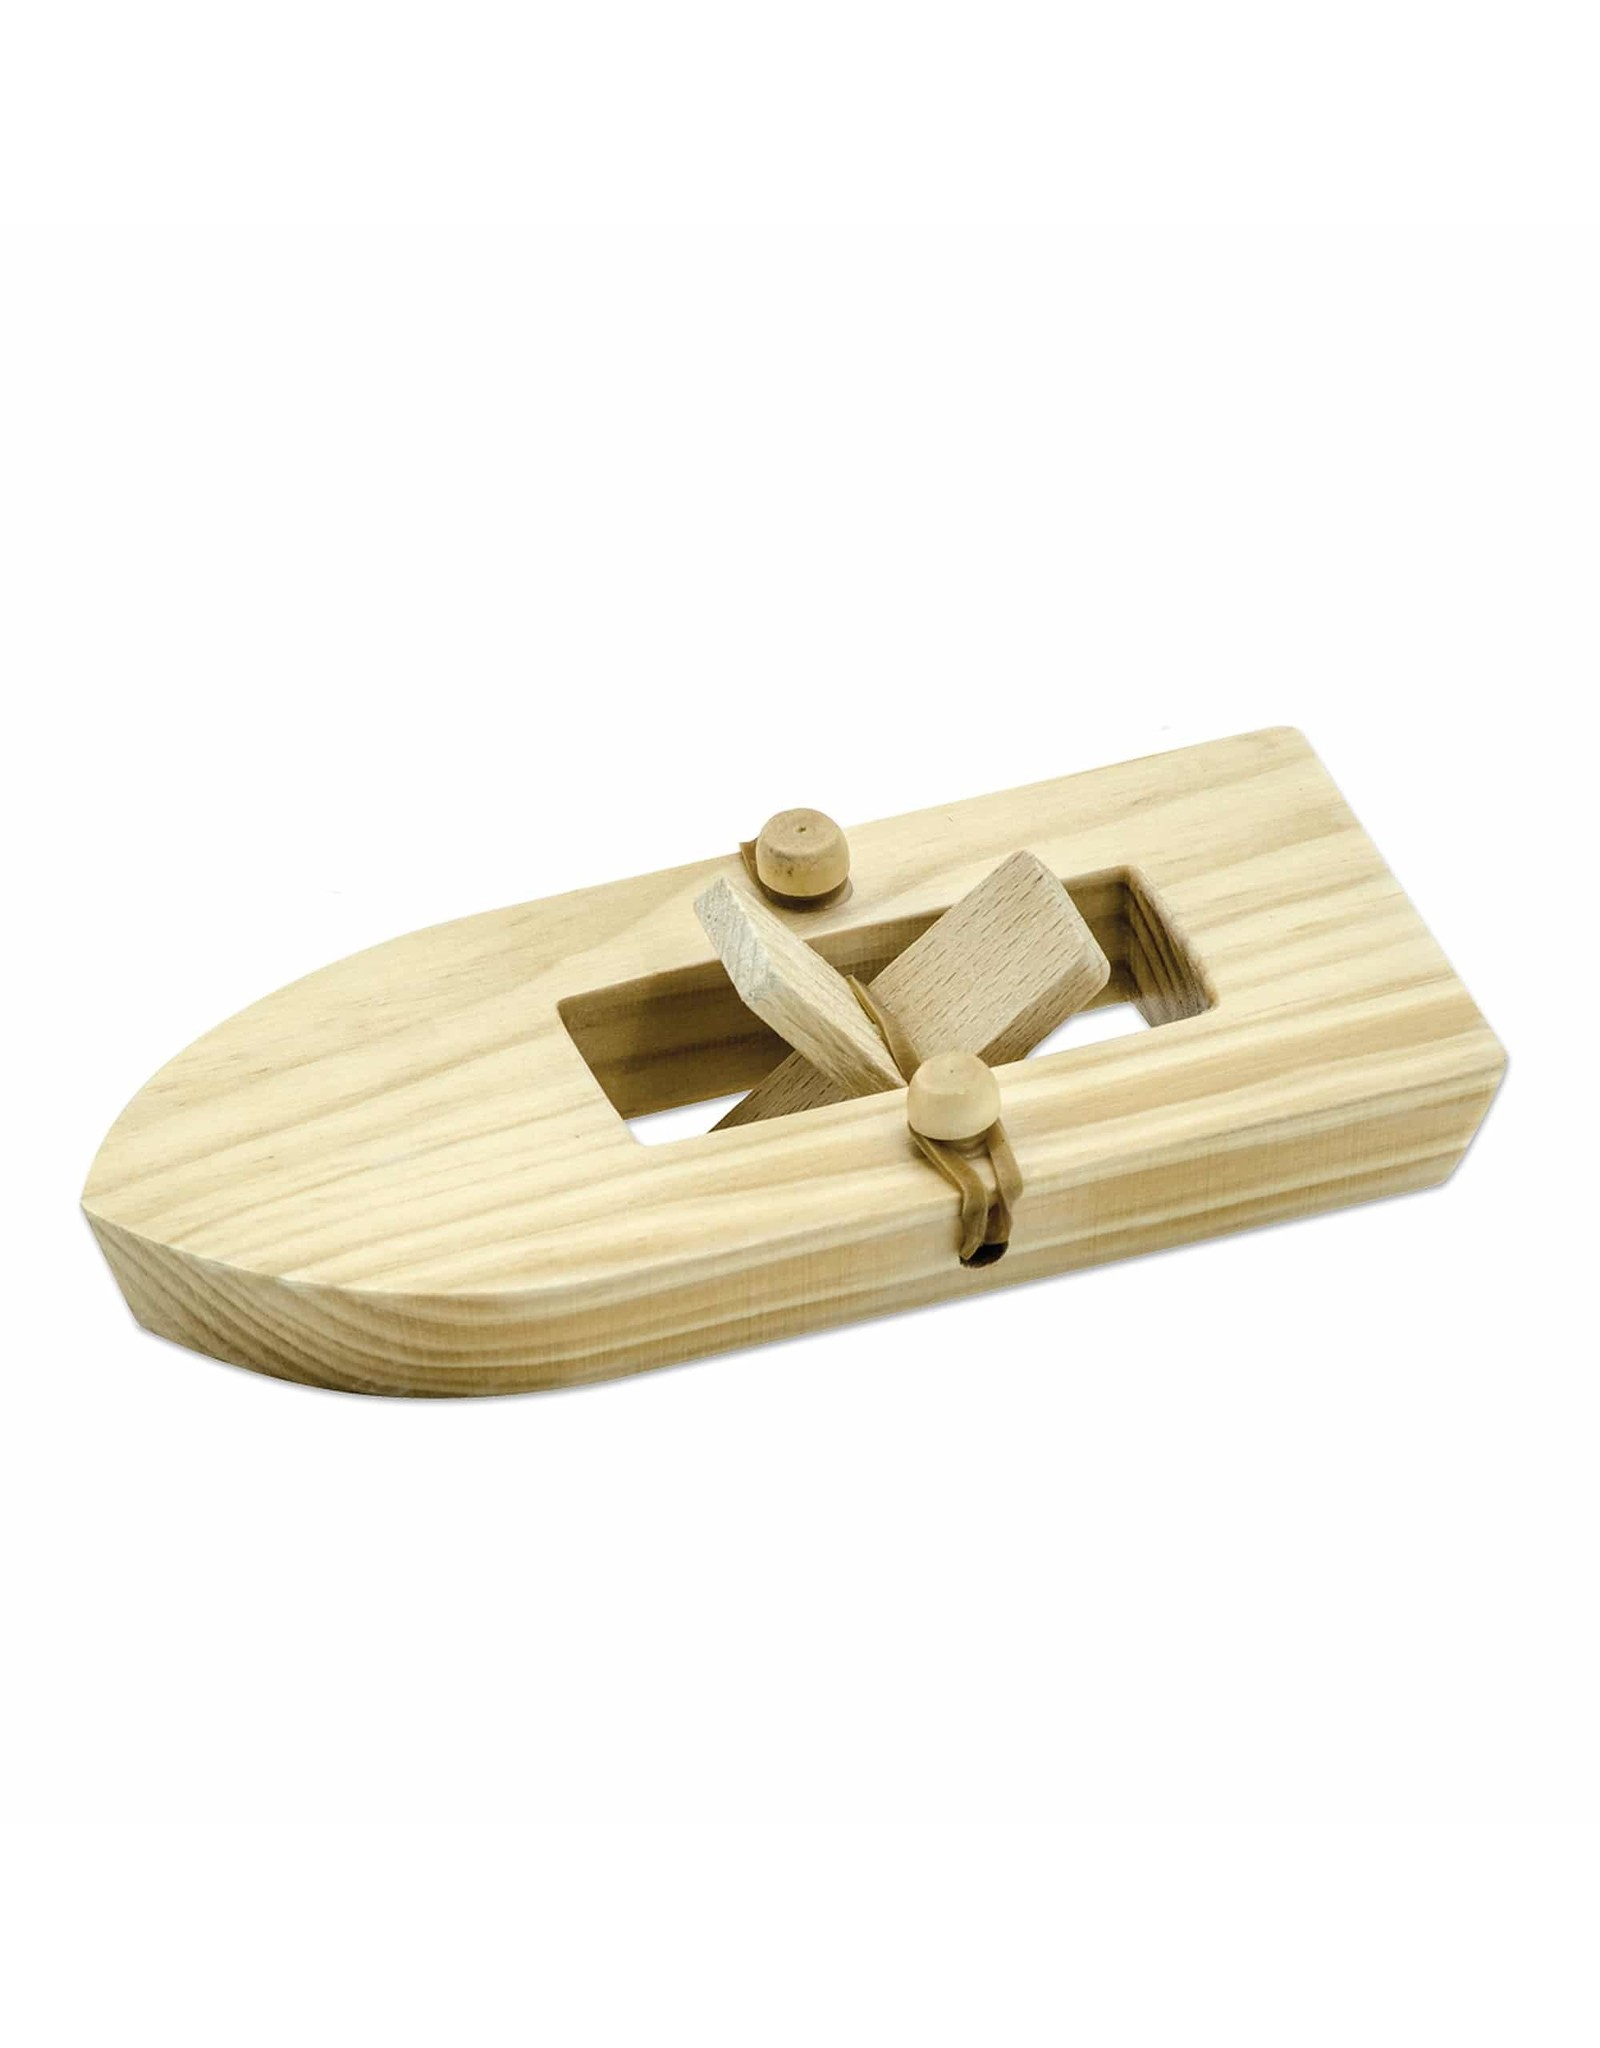 Schylling Wooden Paddle Boat